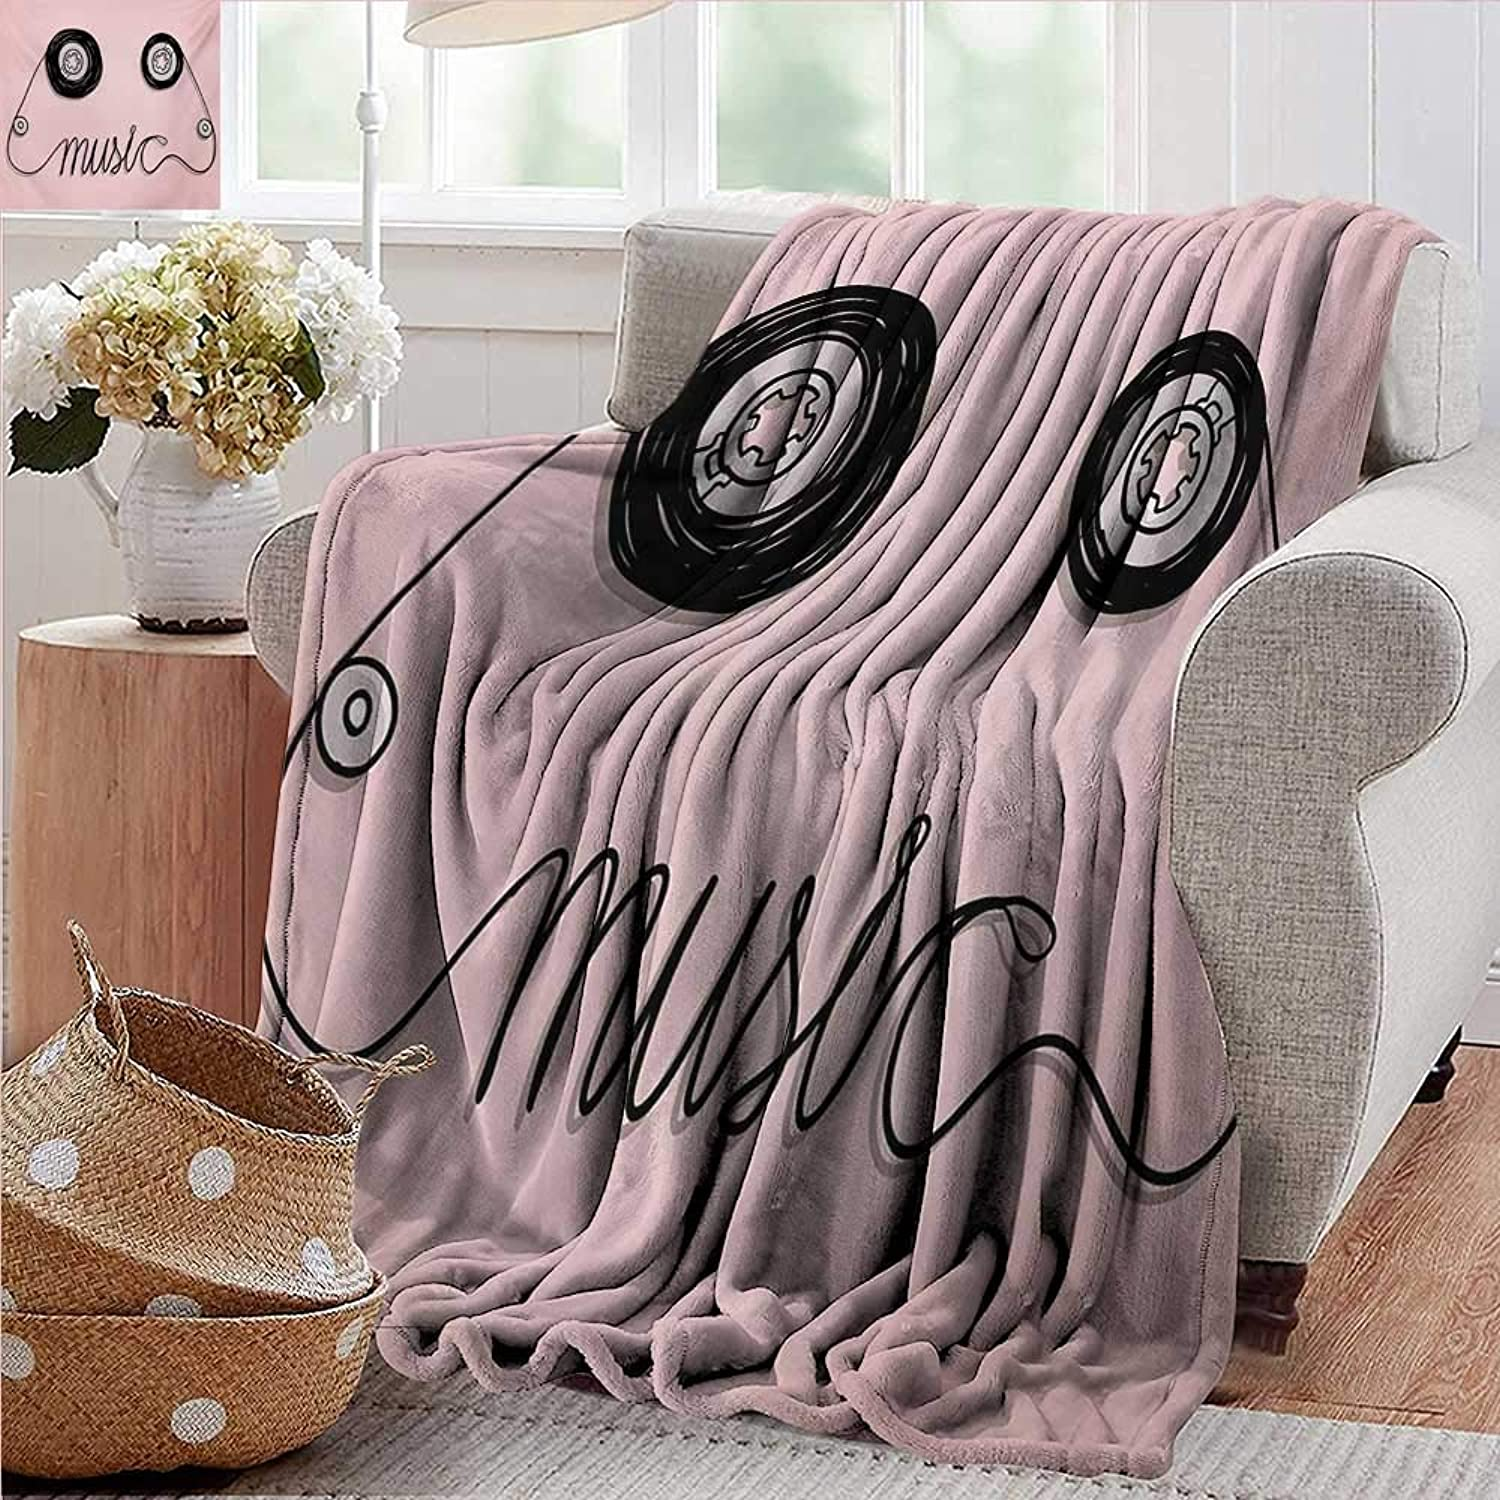 PearlRolan Weighted Blanket for Kids,Music,Music Letters Written by Cassette Tape Loud Improvisation Beat Pulse Tempo Image,Pink Black,Weighted Blanket for Adults Kids, Better Deeper Sleep 35 x60